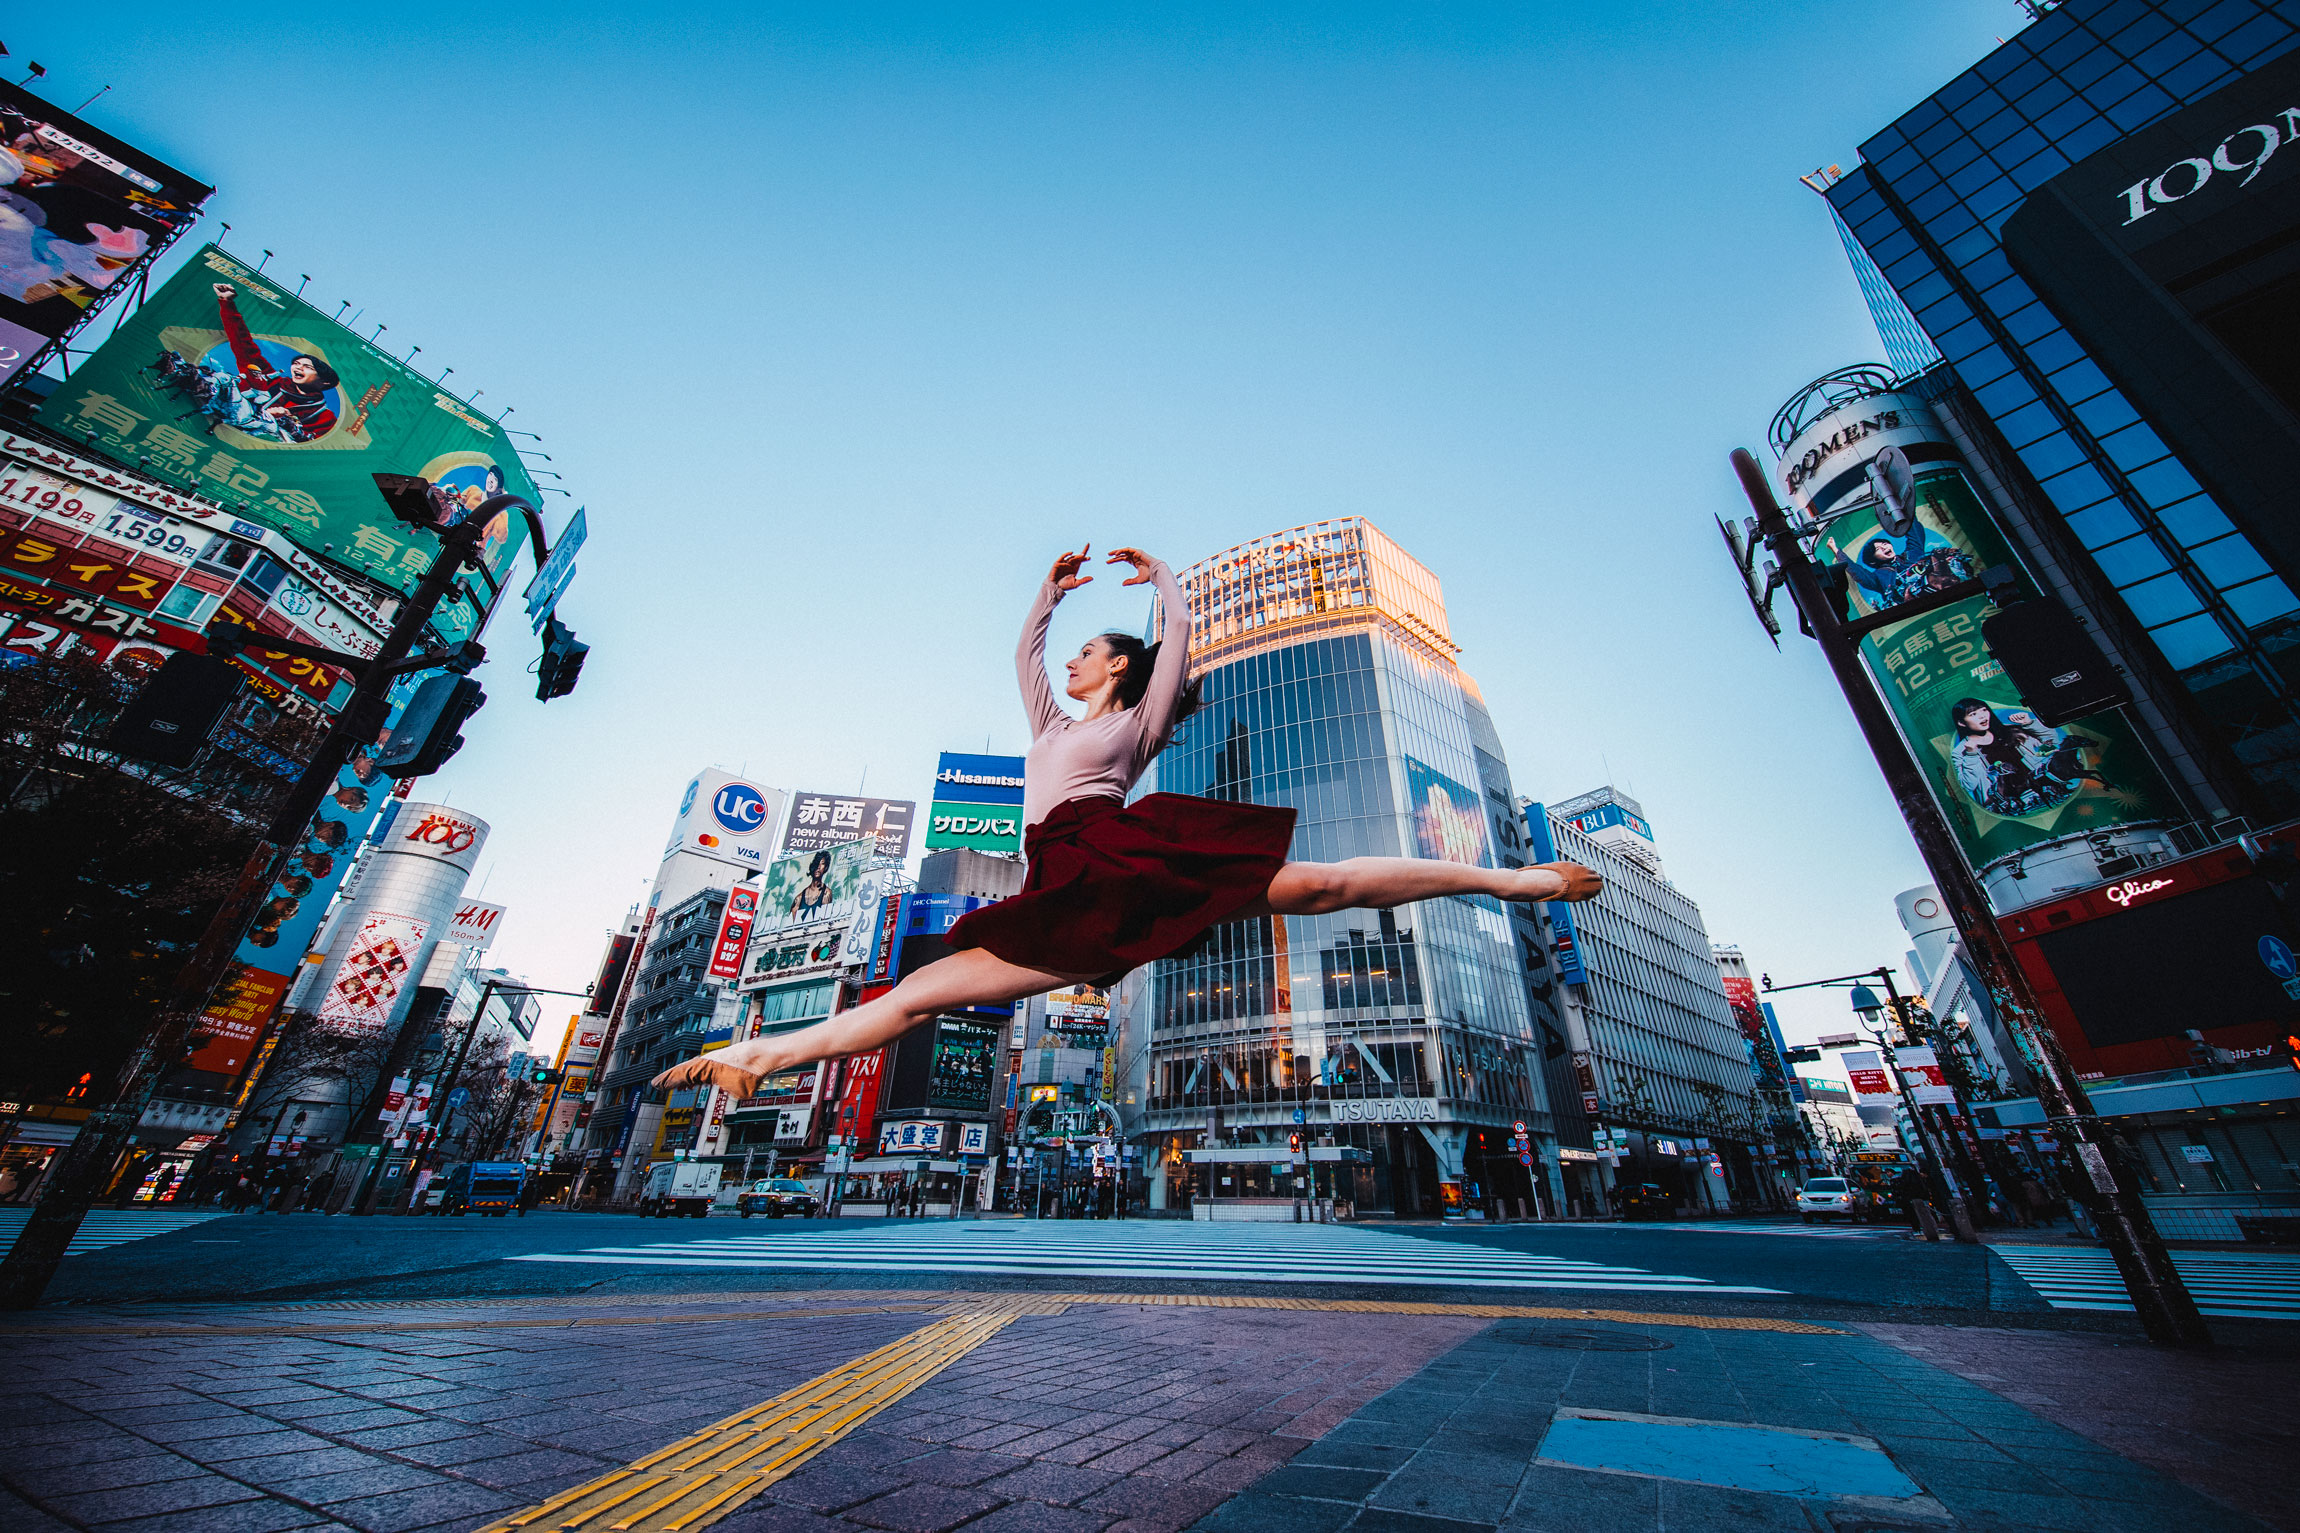 The Dancer of Shibuya Crossing